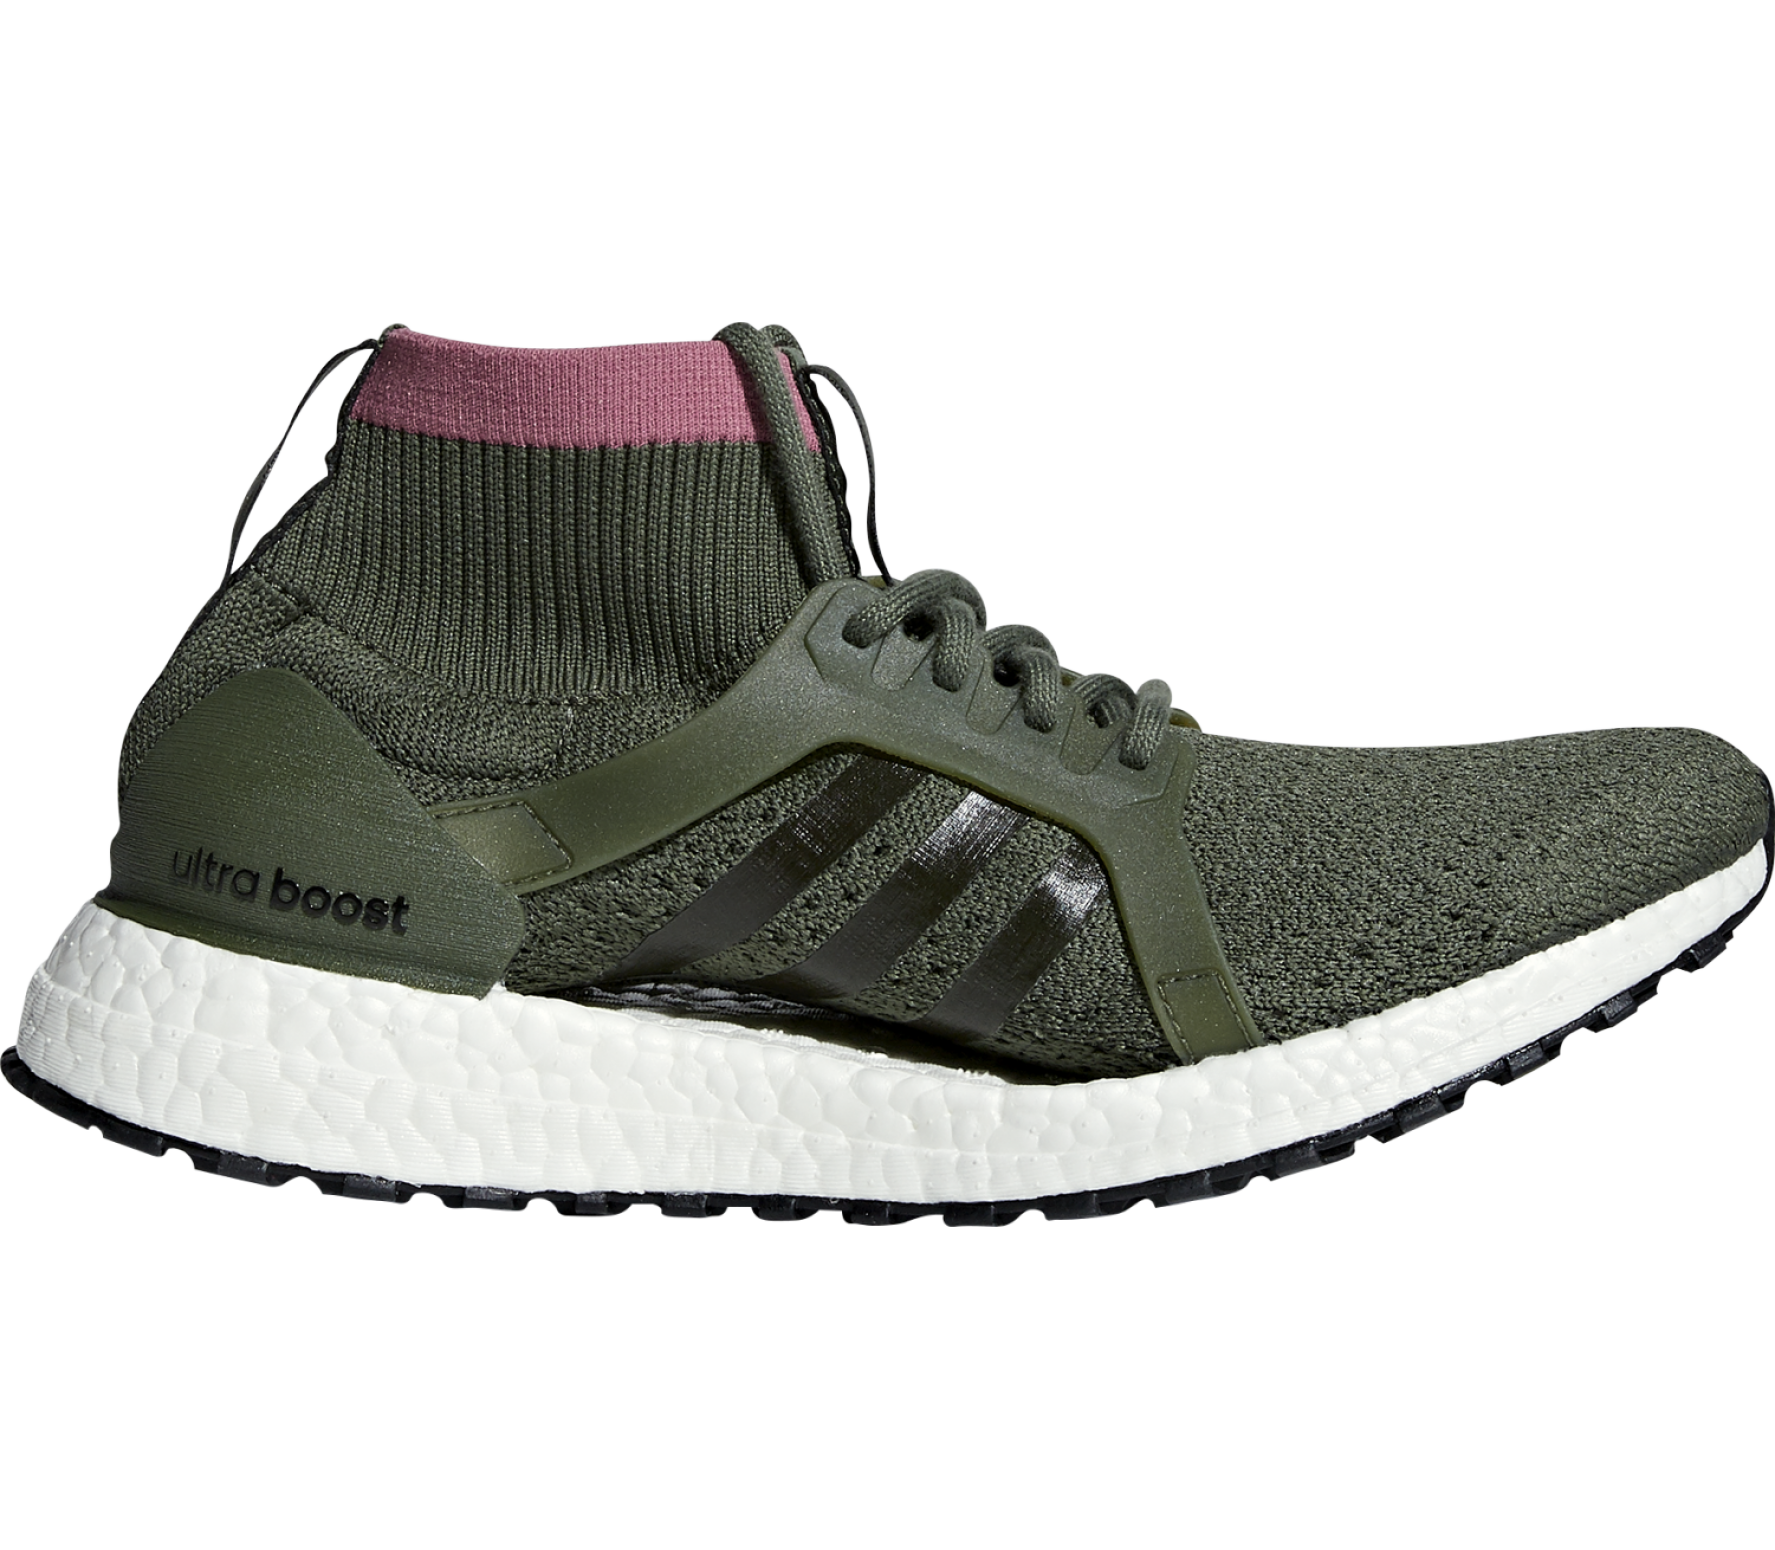 separation shoes 960f5 4aa29 adidas Performance - UltraBoost X All Terrain women s running shoes (green)  - buy it at the Keller Sports online shop